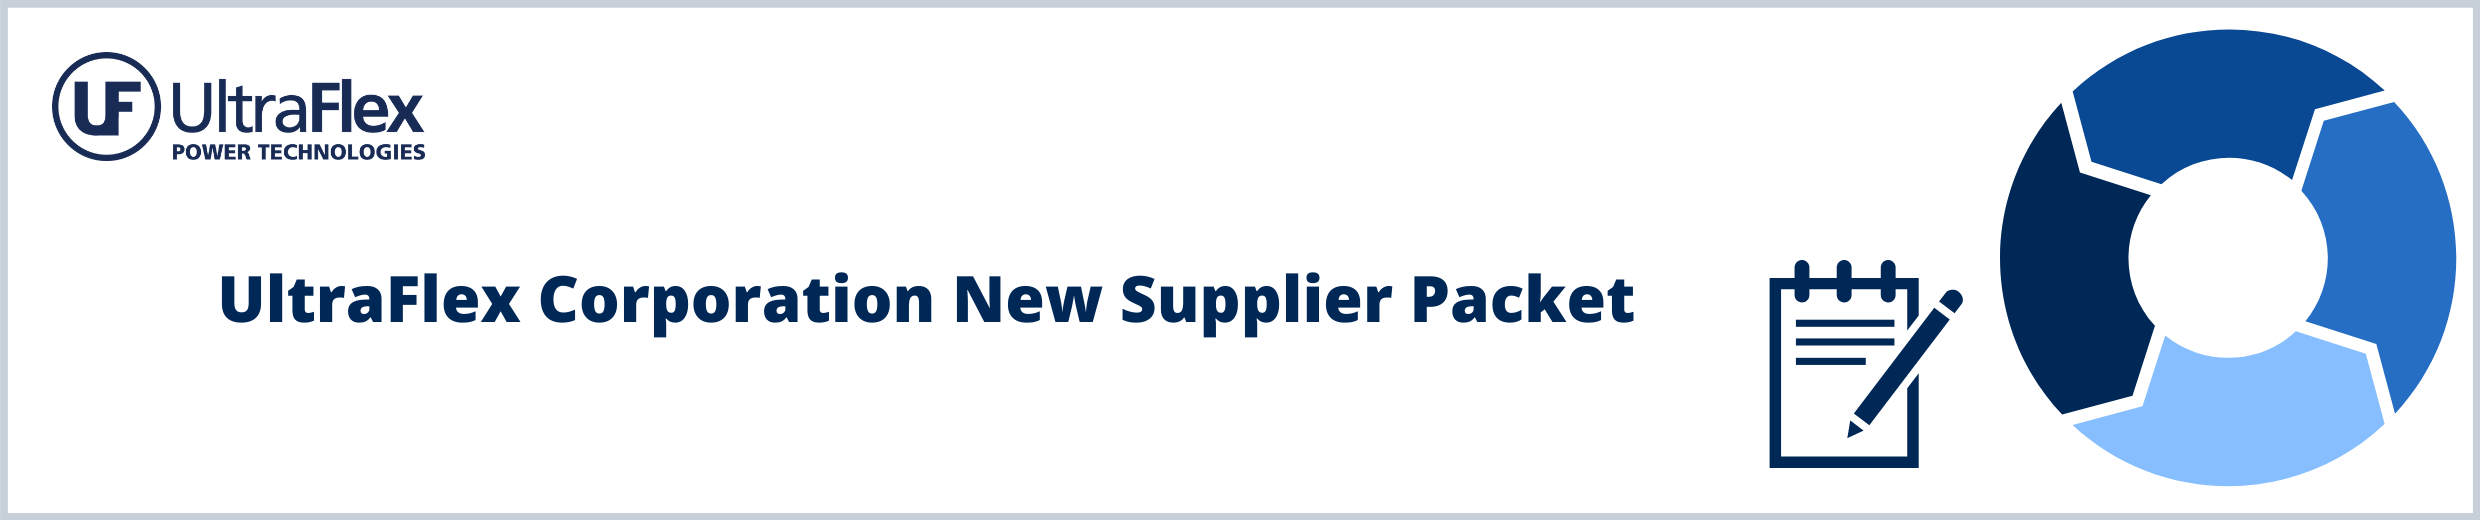 UltraFlex Corporation New Supplier Packet (1)